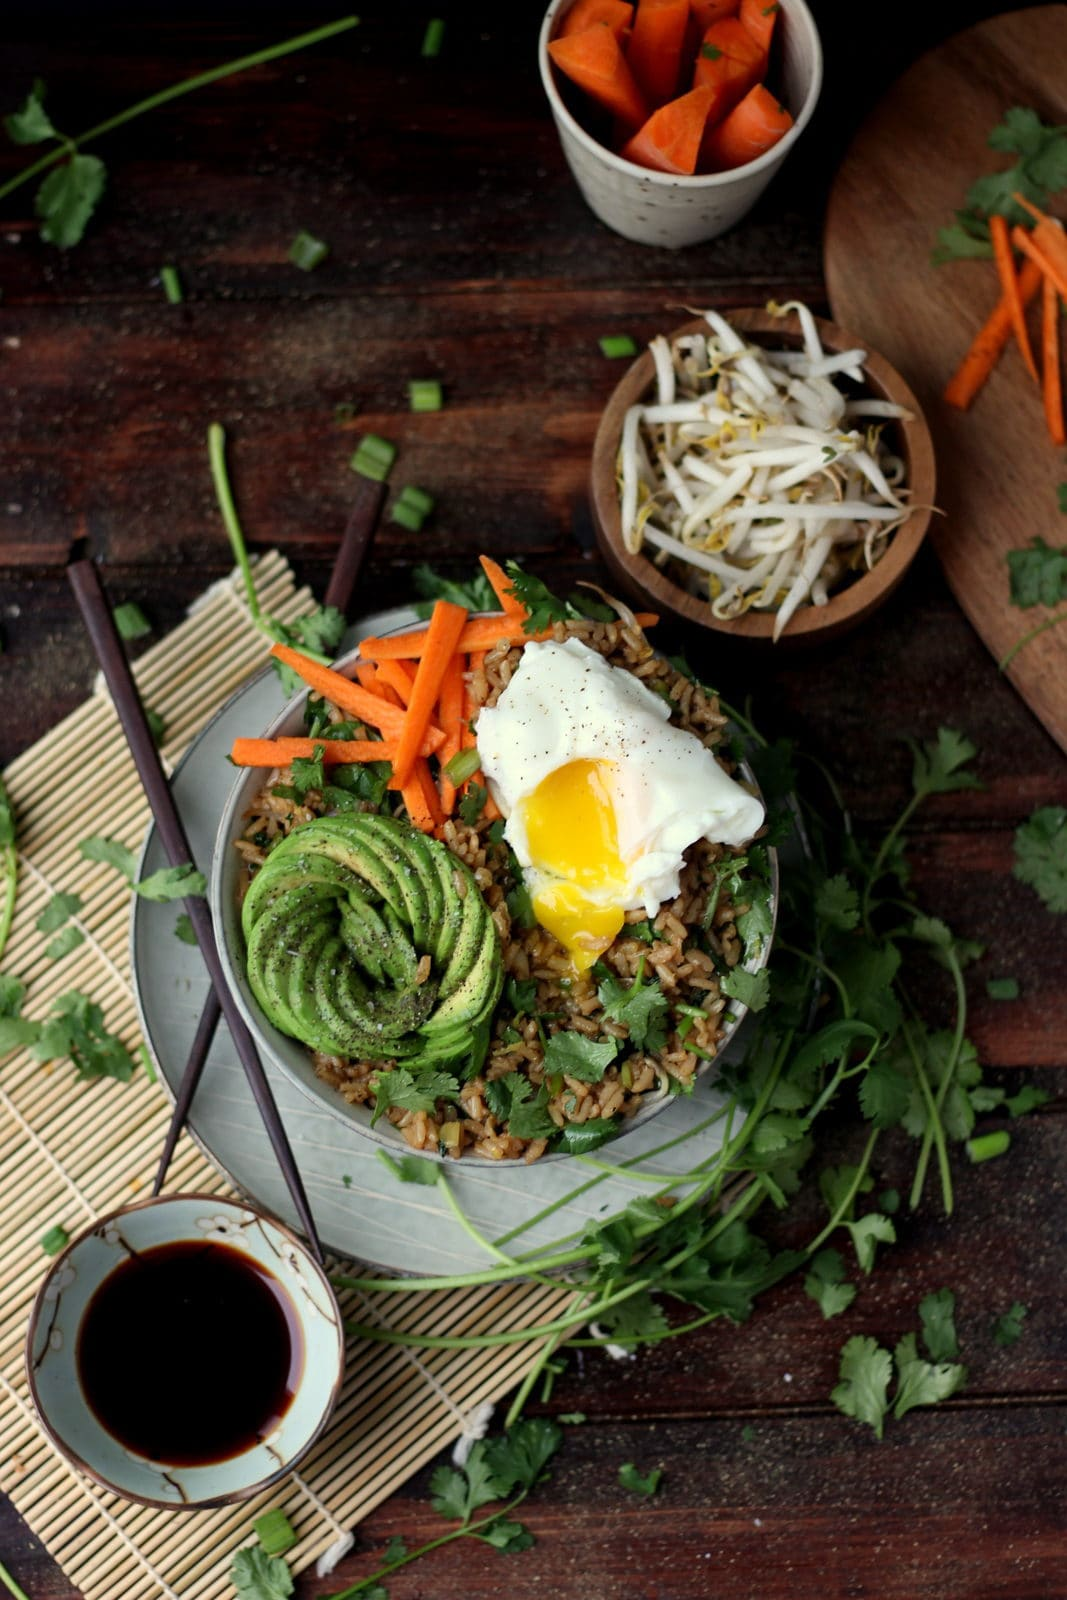 Cilantro Fried Rice + Avocado and Poached Egg - awesome vegetarian rice bowl recipe! thewoodenskillet.com #foodstyling #foodphotography